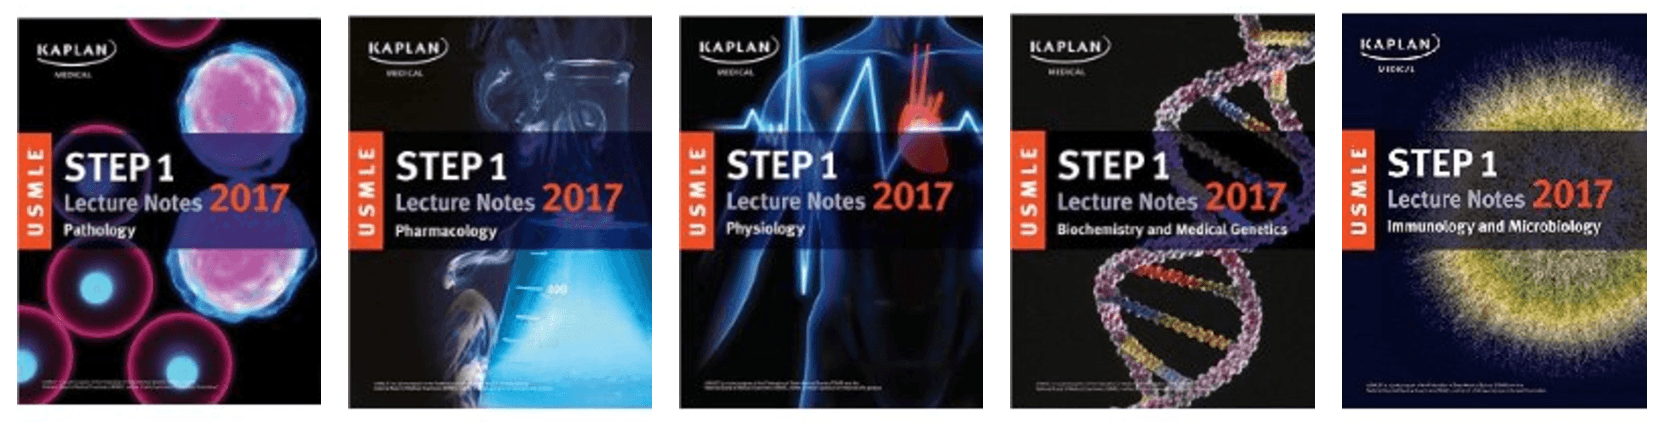 Kaplan usmle korak 1 lecture notes